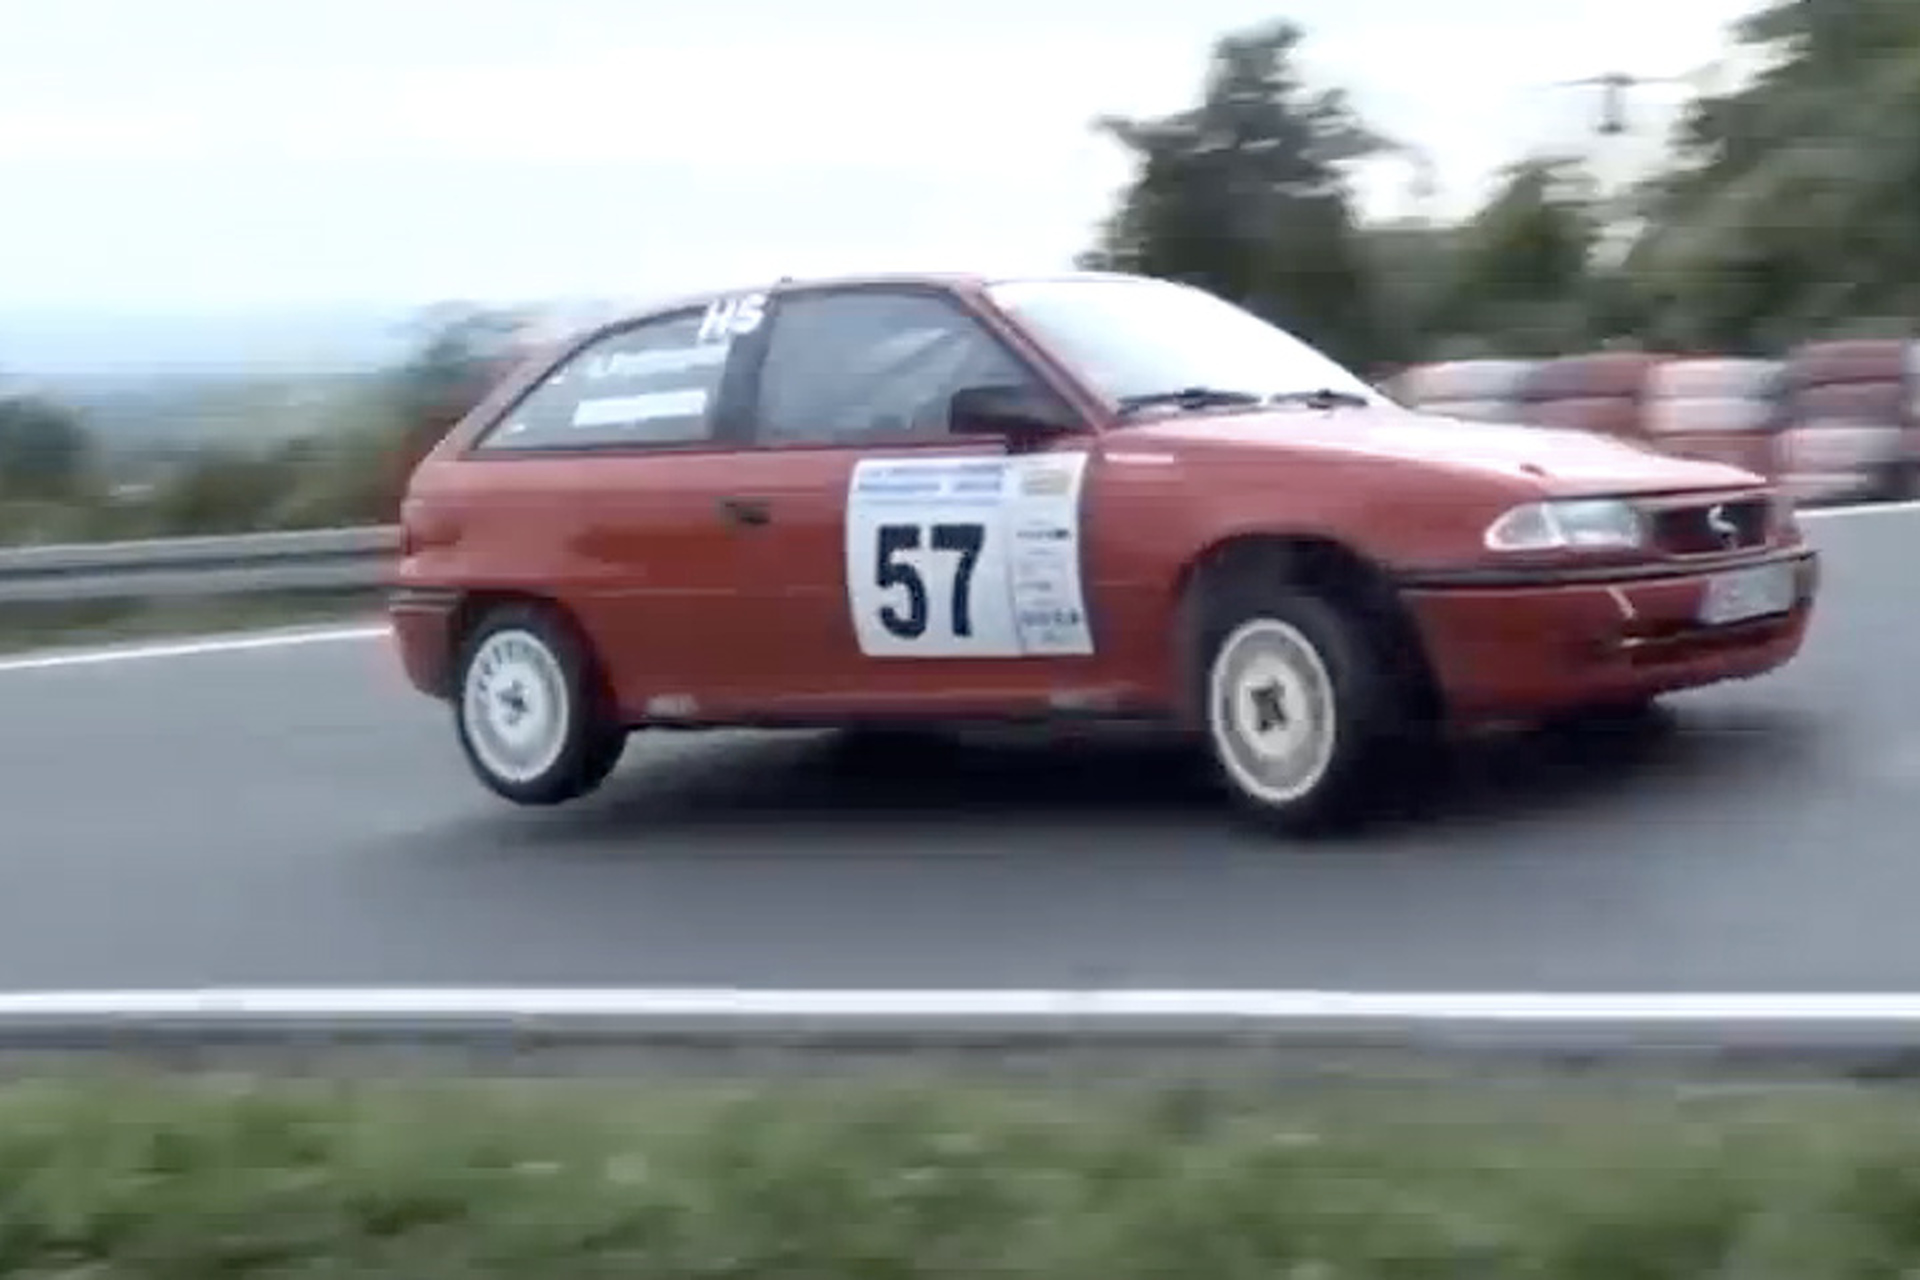 Racer Drives his Opel Hatchback Beyond the Limit [Video]